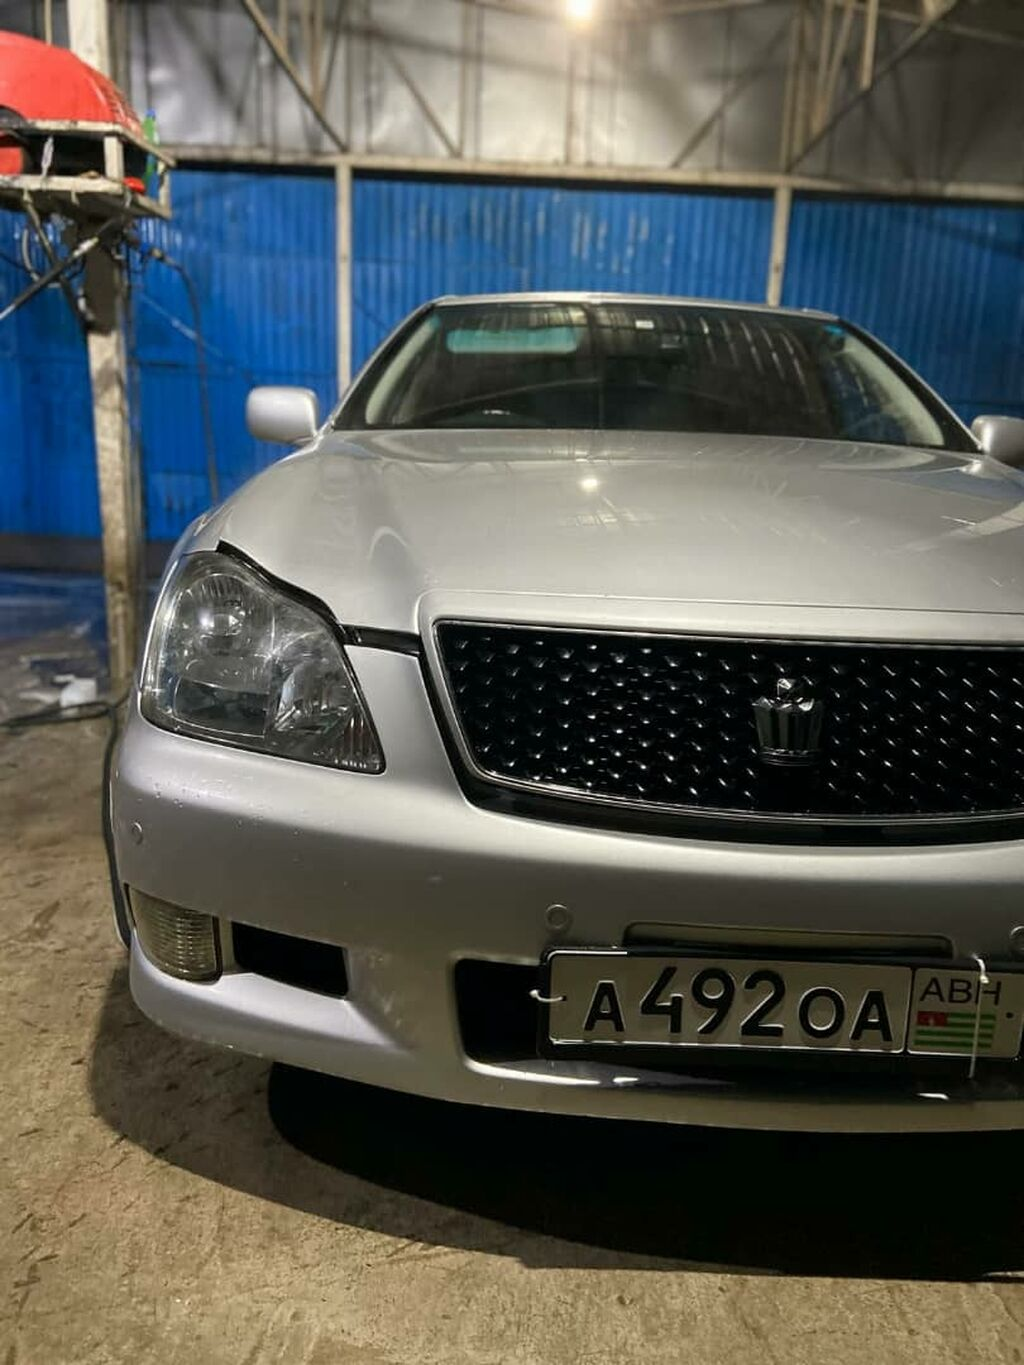 Toyota Crown 3.5 л. 2007 | 150 км: Toyota Crown 3.5 л. 2007 | 150 км